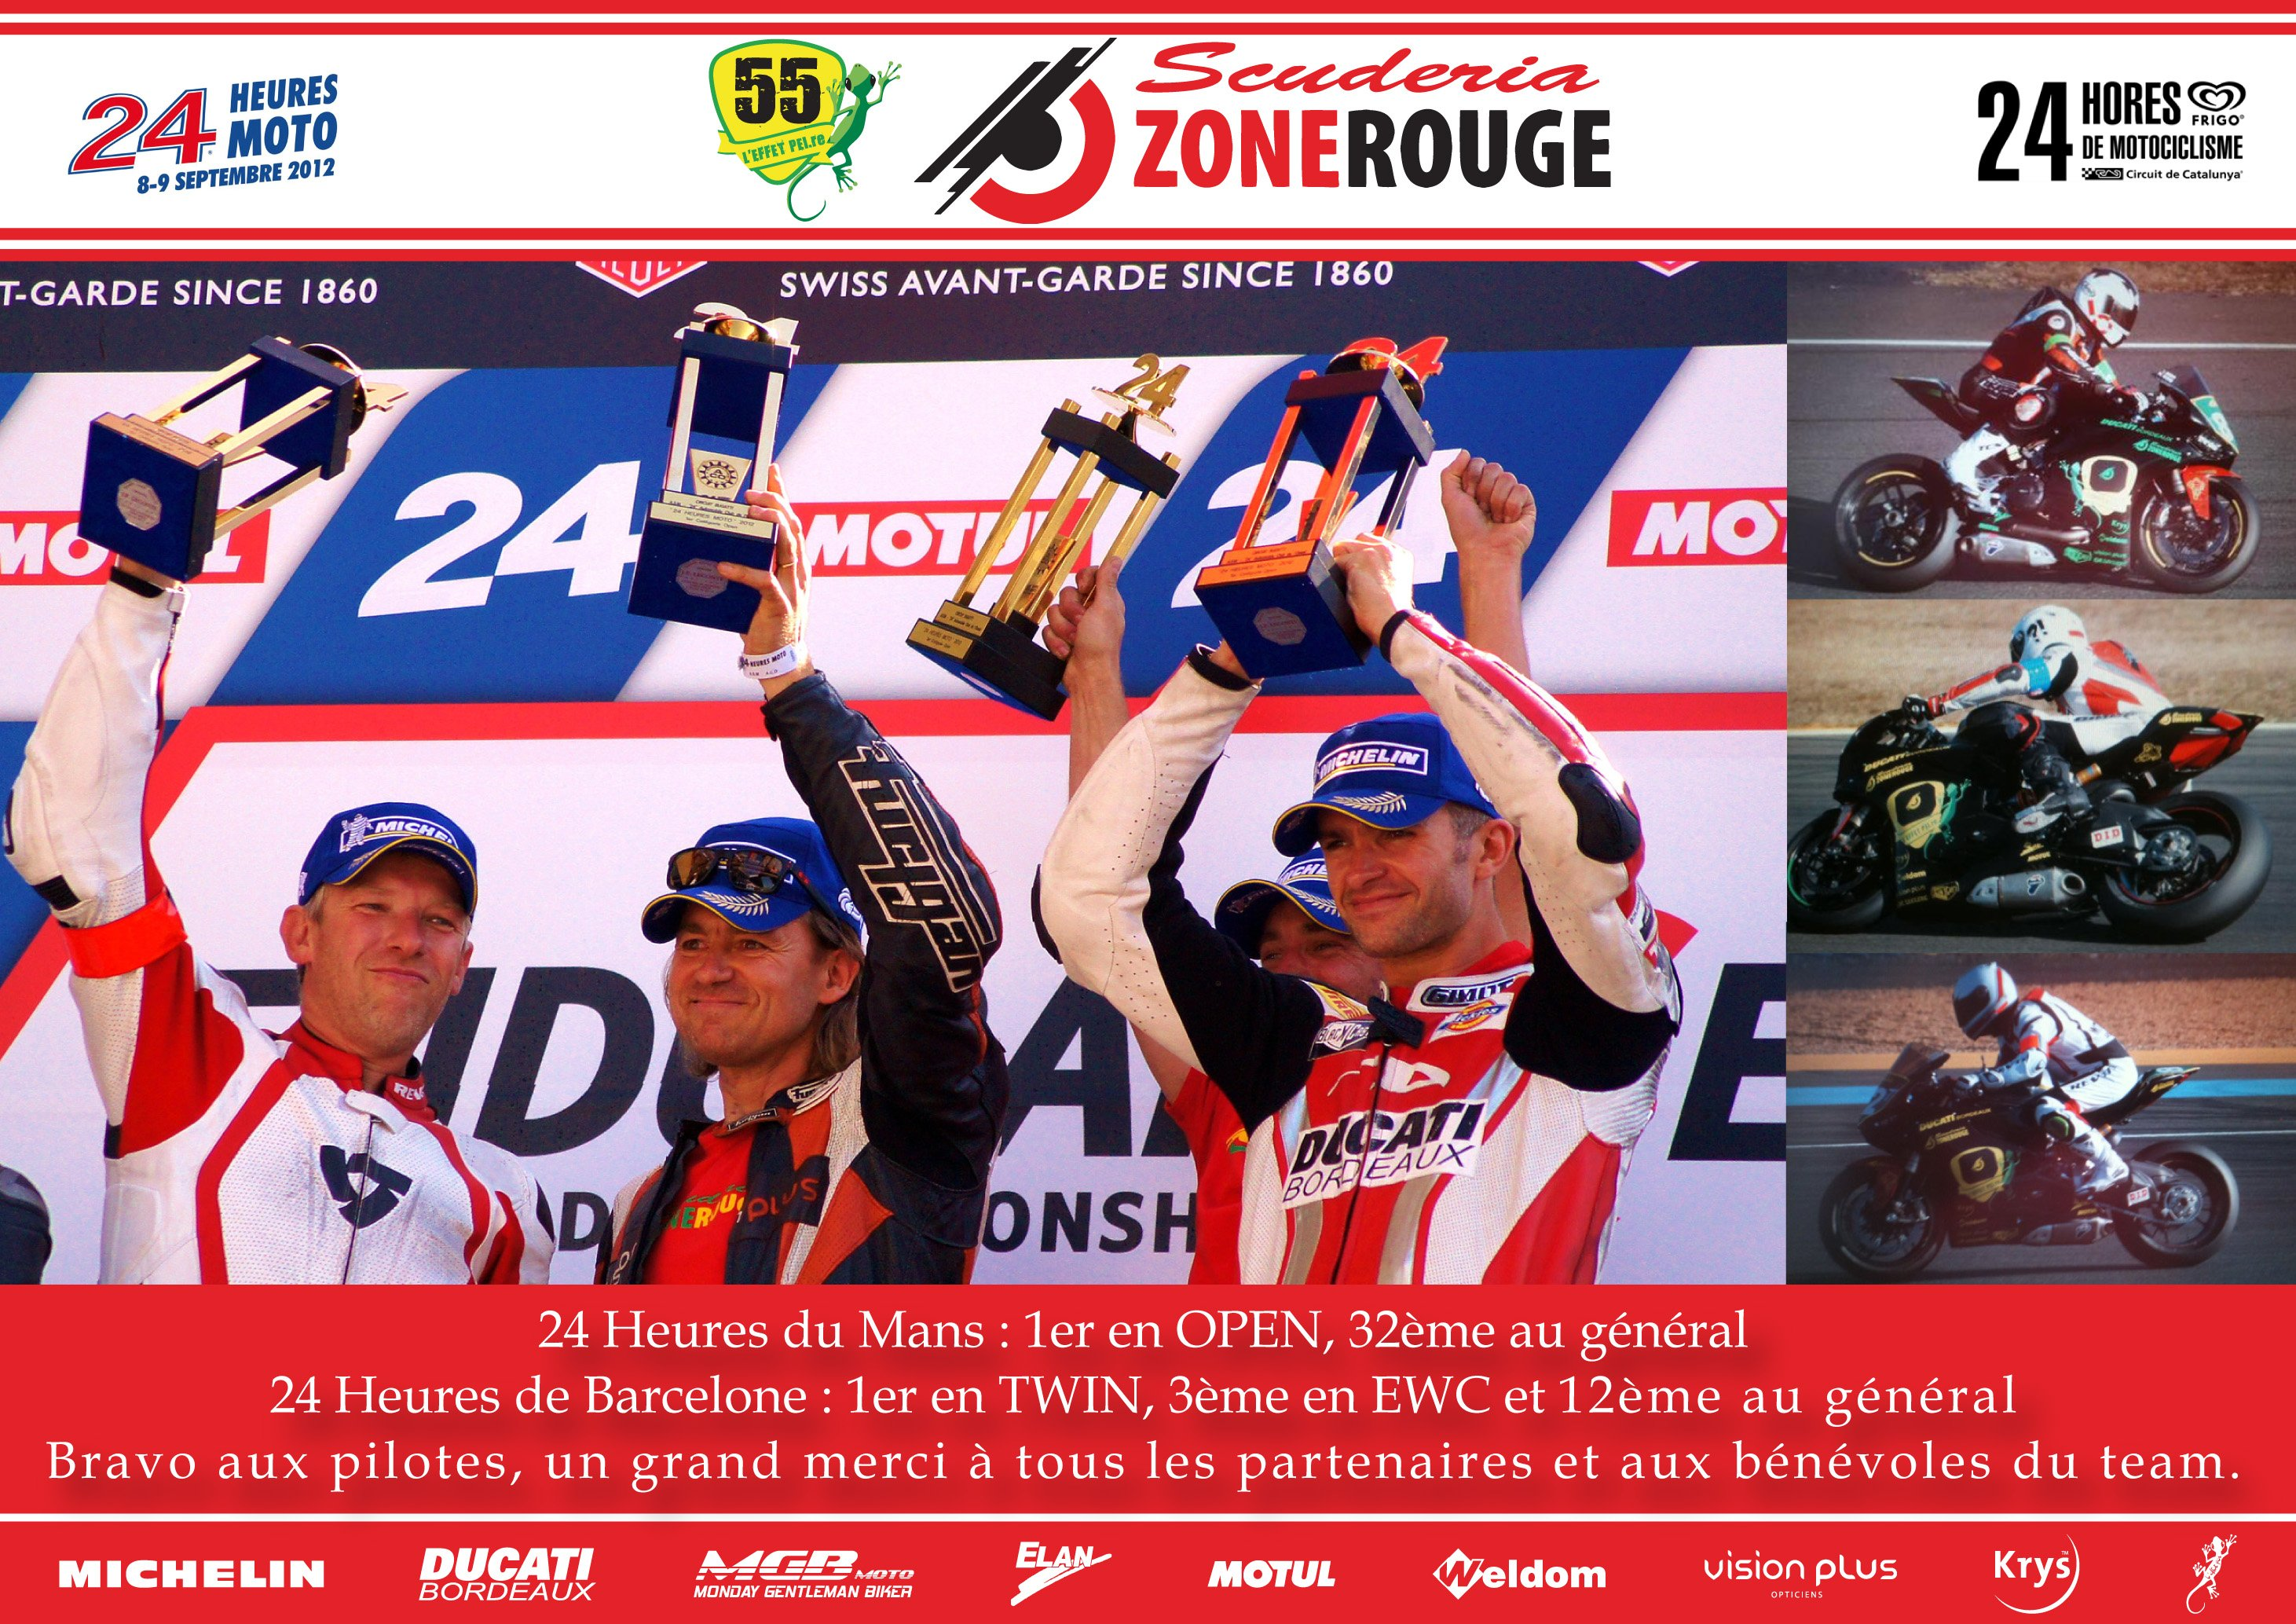 Le team ScuderiaZoneRouge sur le podium des 24H du Mans. dans Team 2012-09-11-CR